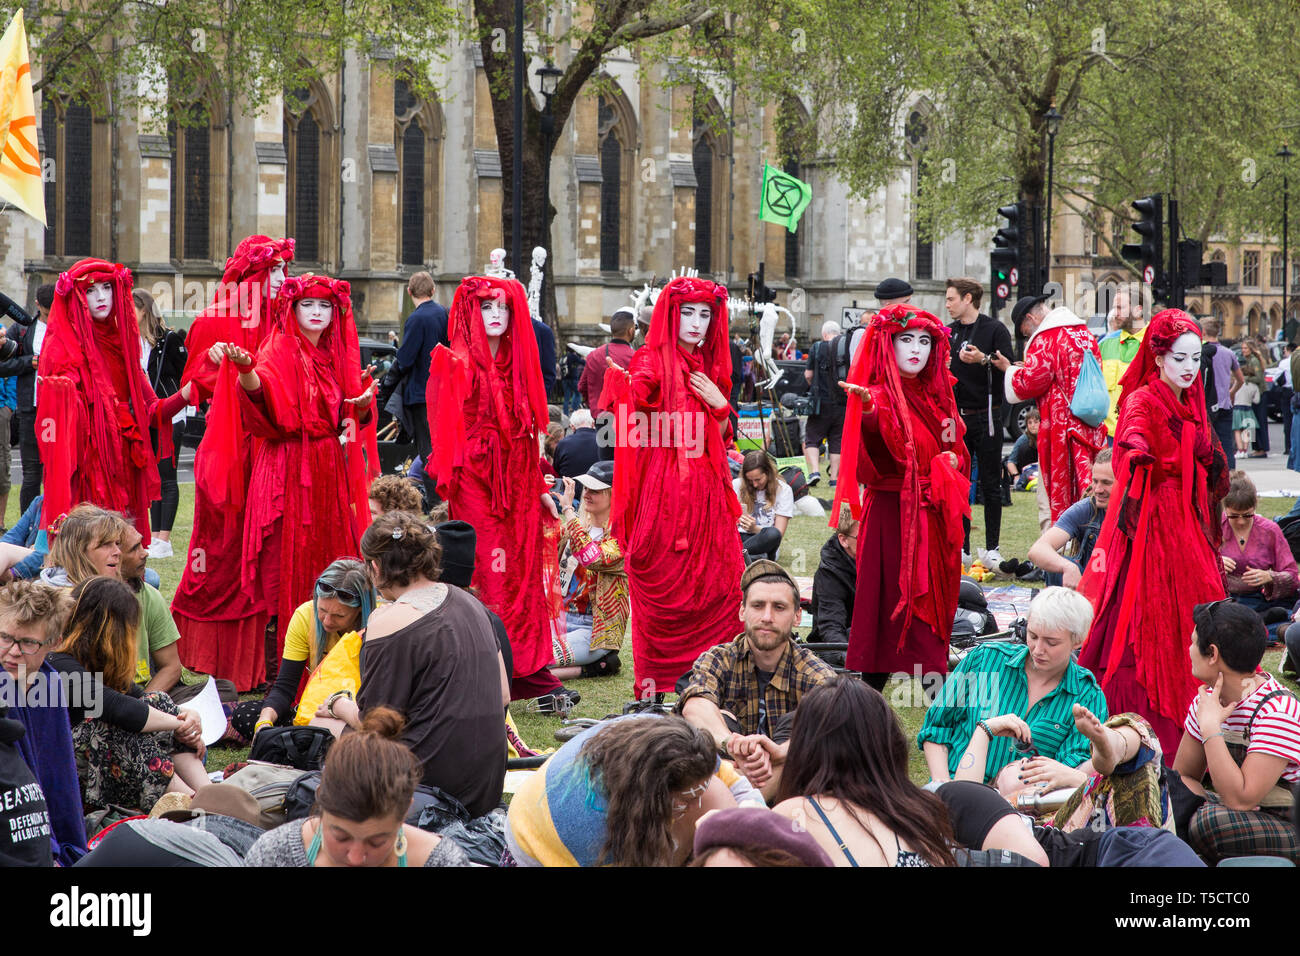 London, UK. 23rd April 2019. Climate change activists from Extinction Rebellion dressed in red to signify the blood of the dying planet cross Parliament Square during an assembly to discuss the preparation and delivery of activists' letters requesting meetings with Members of Parliament. Credit: Mark Kerrison/Alamy Live News - Stock Image